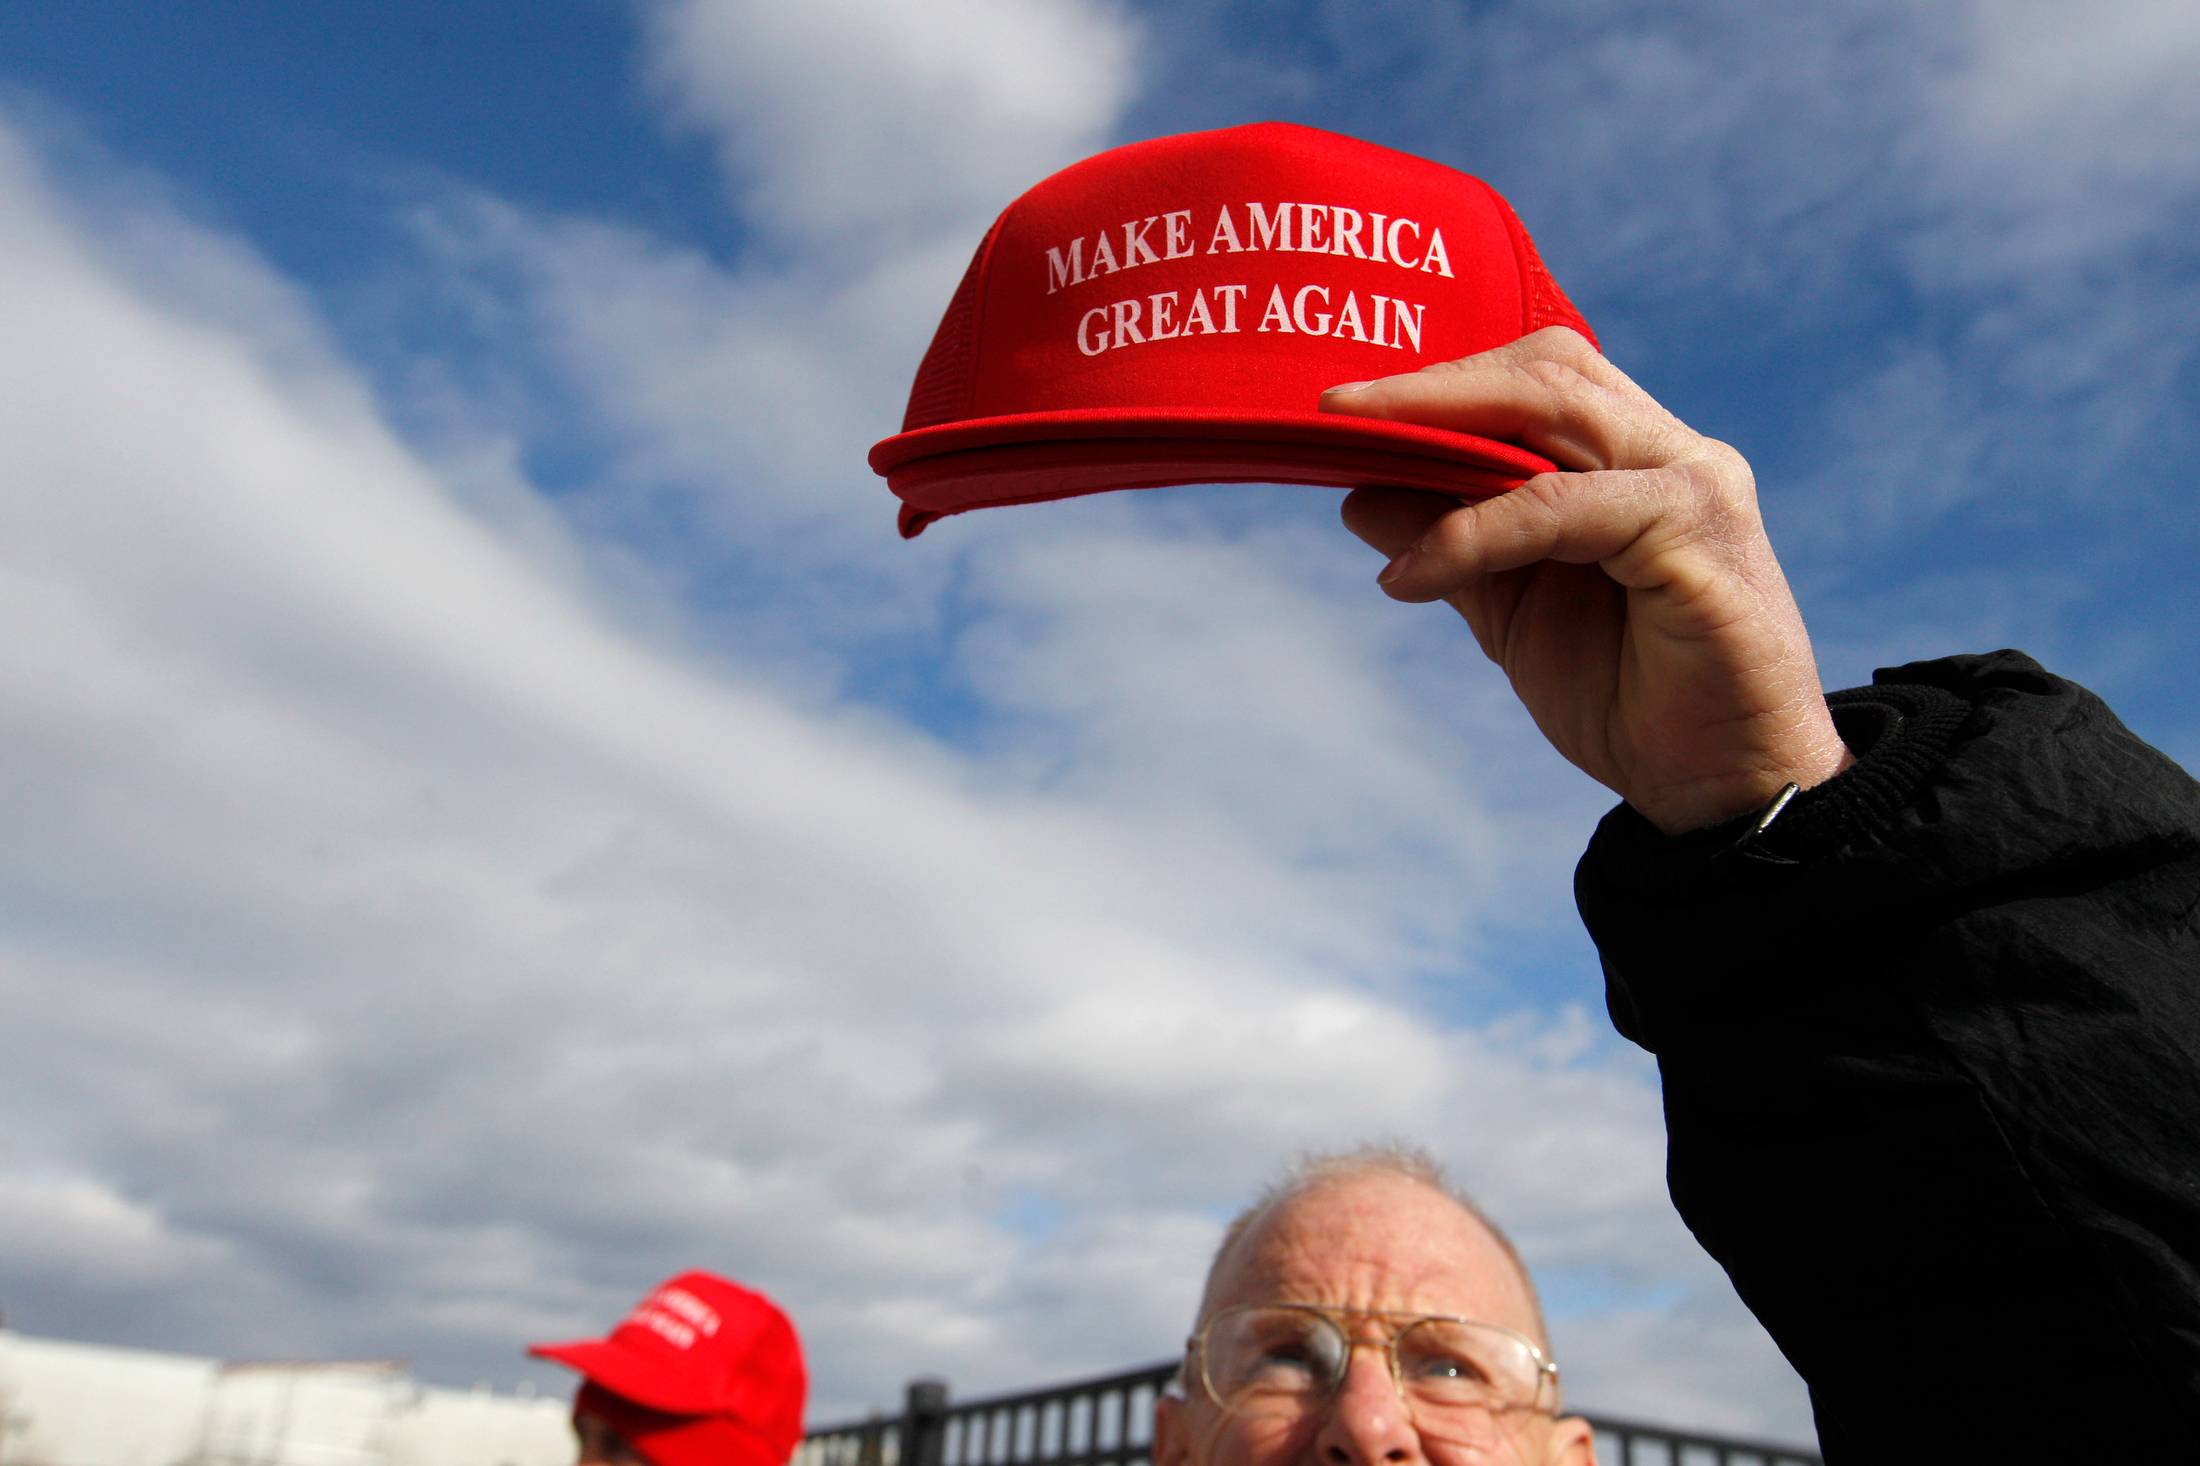 Robert Binington of Sarasota, Florida holds up a 'Make America Great Again' hat while selling paraphernalia in support of Republican candidate for president Donald Trump prior to a rally for Trump at Plymouth State University ALLWell North in Holderness, New Hampshire on February 7, 2016. New Hampshire will hold the first primary in the country on February 9th.